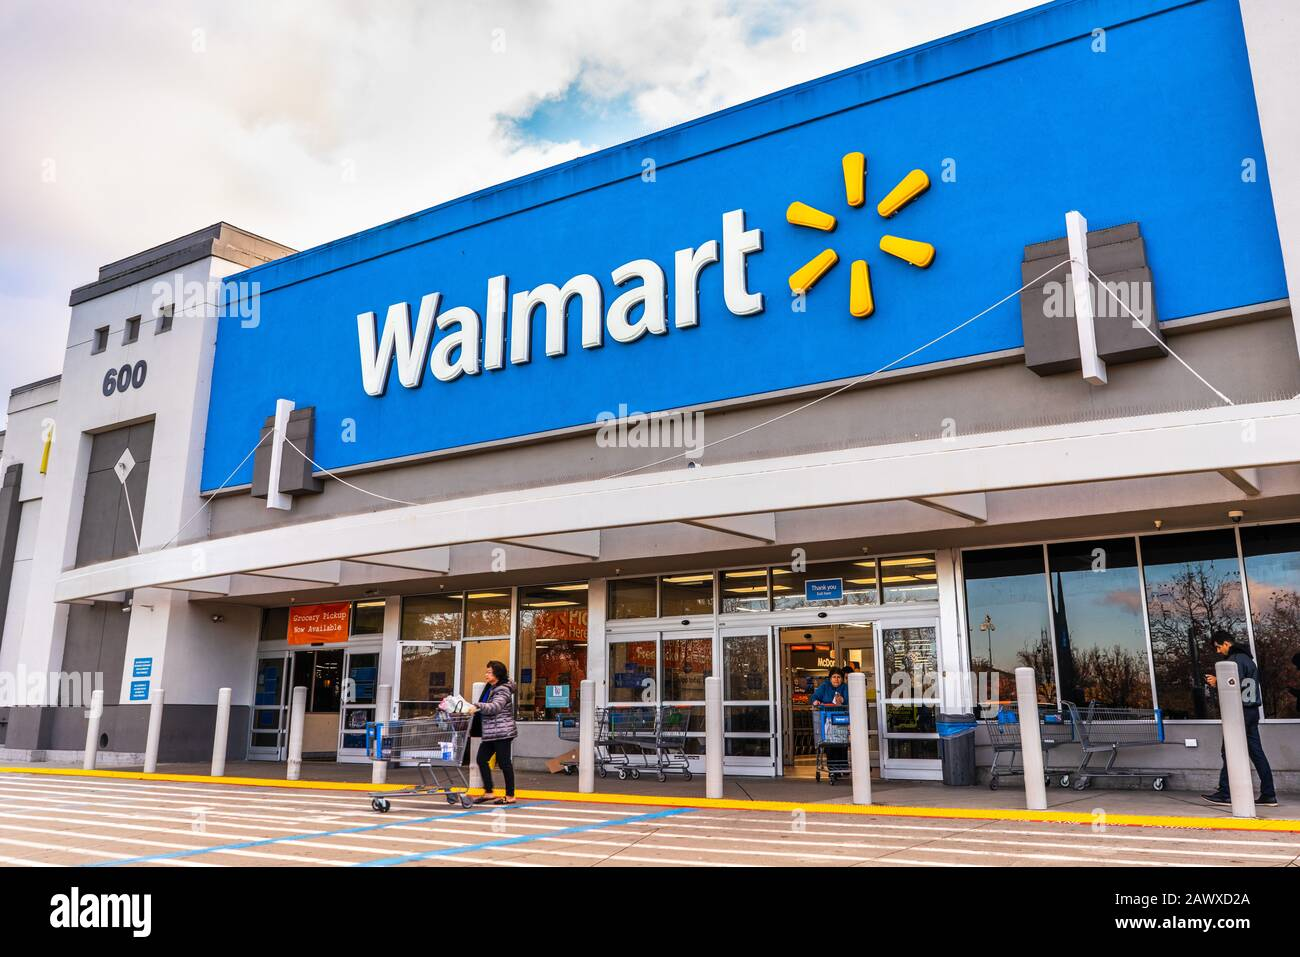 Exterior Entrance To Walmart High Resolution Stock Photography And Images Alamy